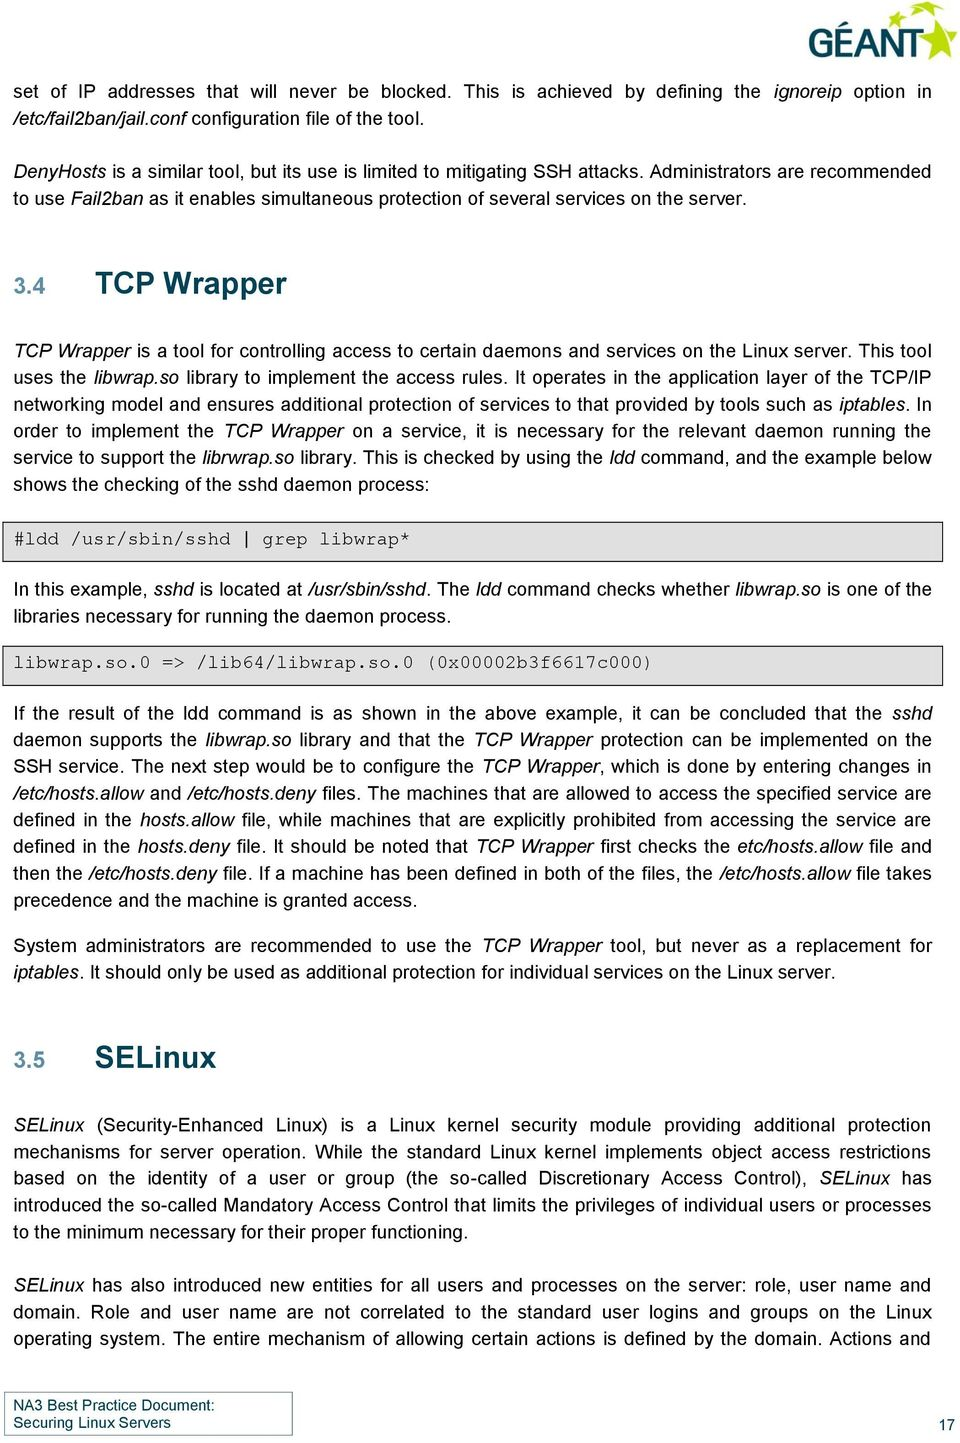 3.4 TCP Wrapper TCP Wrapper is a tool for controlling access to certain daemons and services on the Linux server. This tool uses the libwrap.so library to implement the access rules.